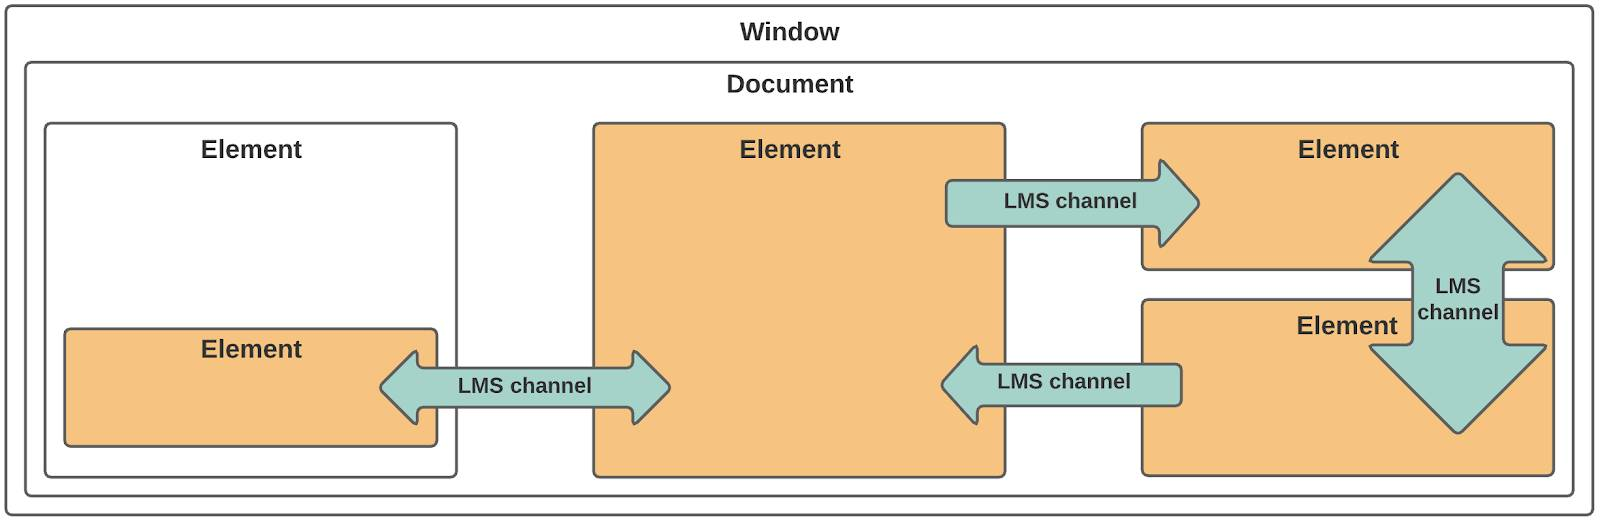 LMS communication diagram showing a document object that contains several elements, including one element within a parent element. LMS channels are represented by unidirectional and bidirectional arrows between elements.